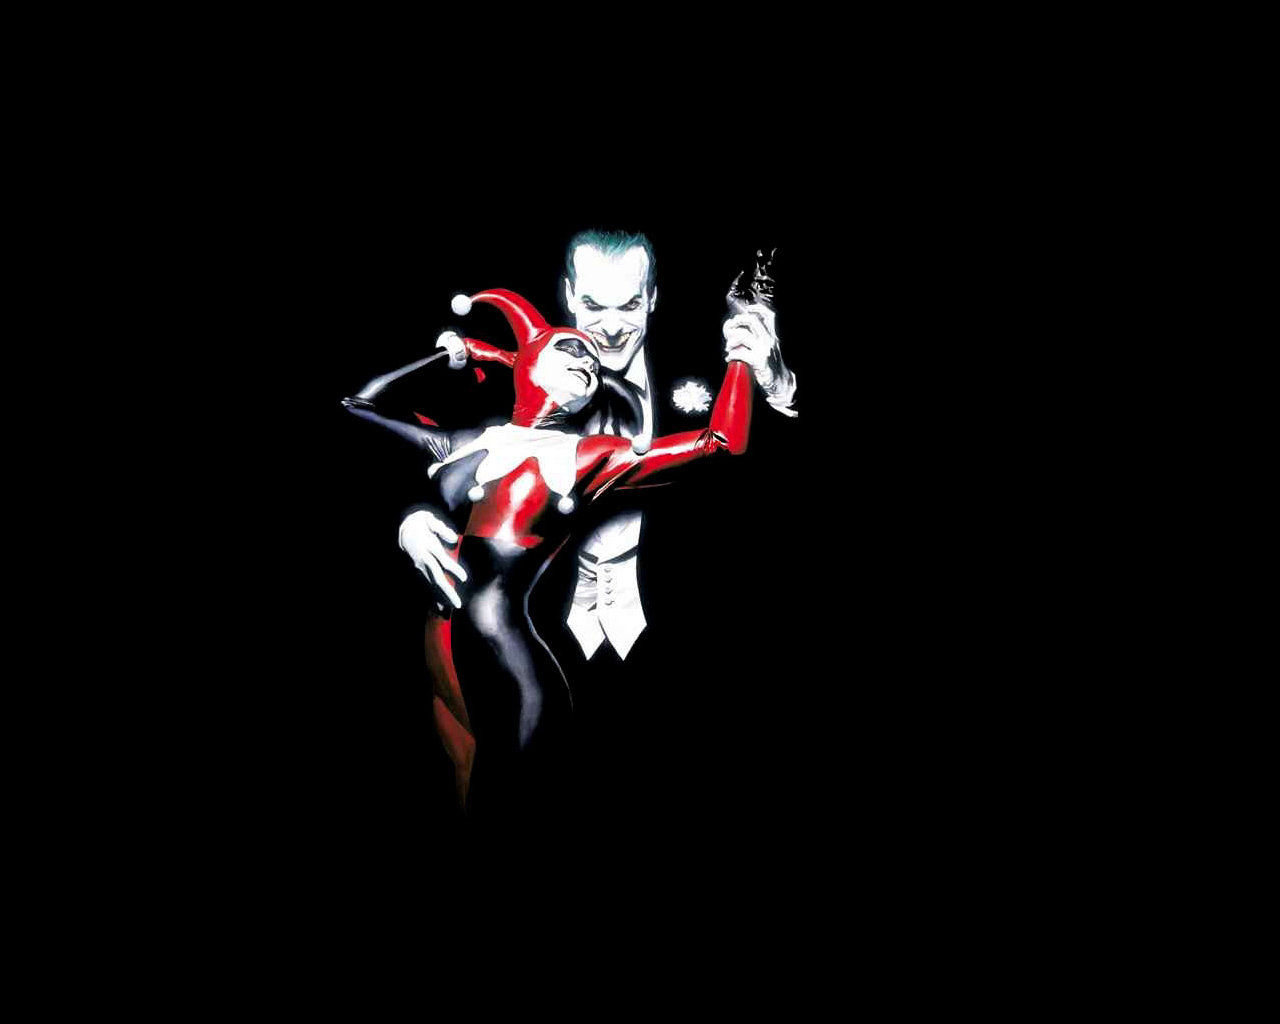 Download hd 1280x1024 Harley Quinn PC background ID:240944 for free